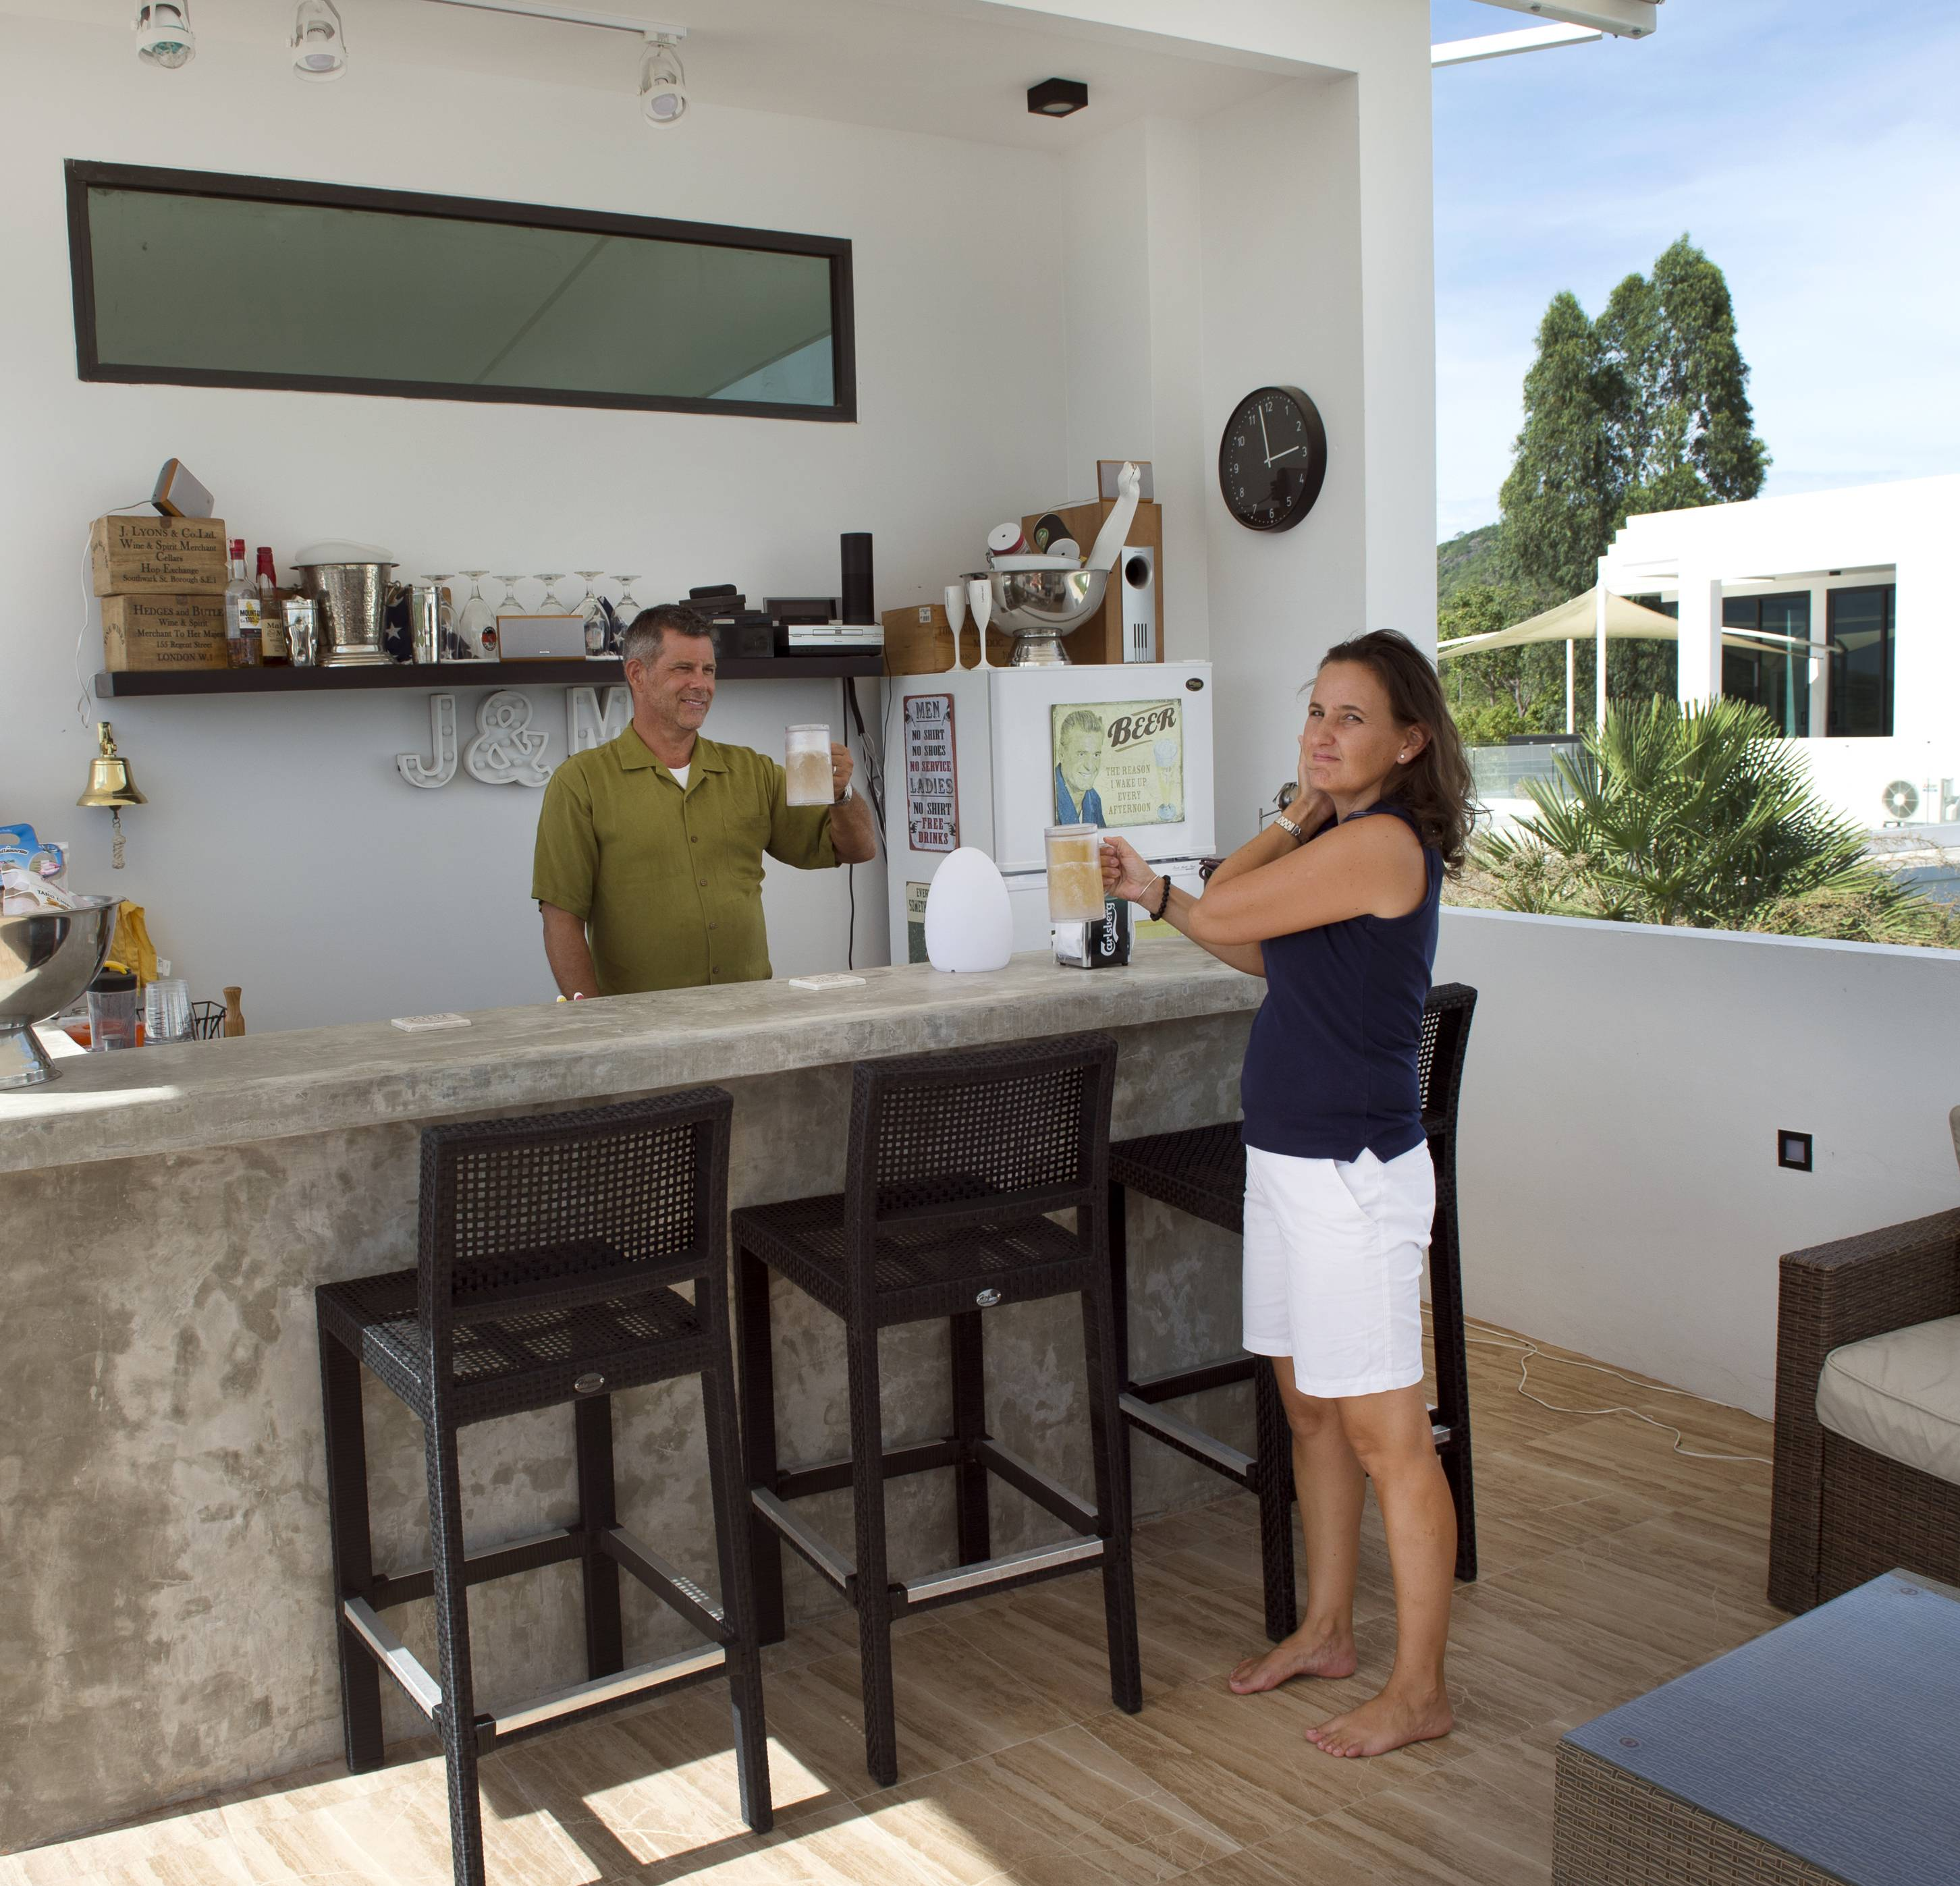 Jeffrey Camp and his wife Mari-Ann Kucharek Camp enjoy their rooftop bar area in Hua Hin, Thailand.